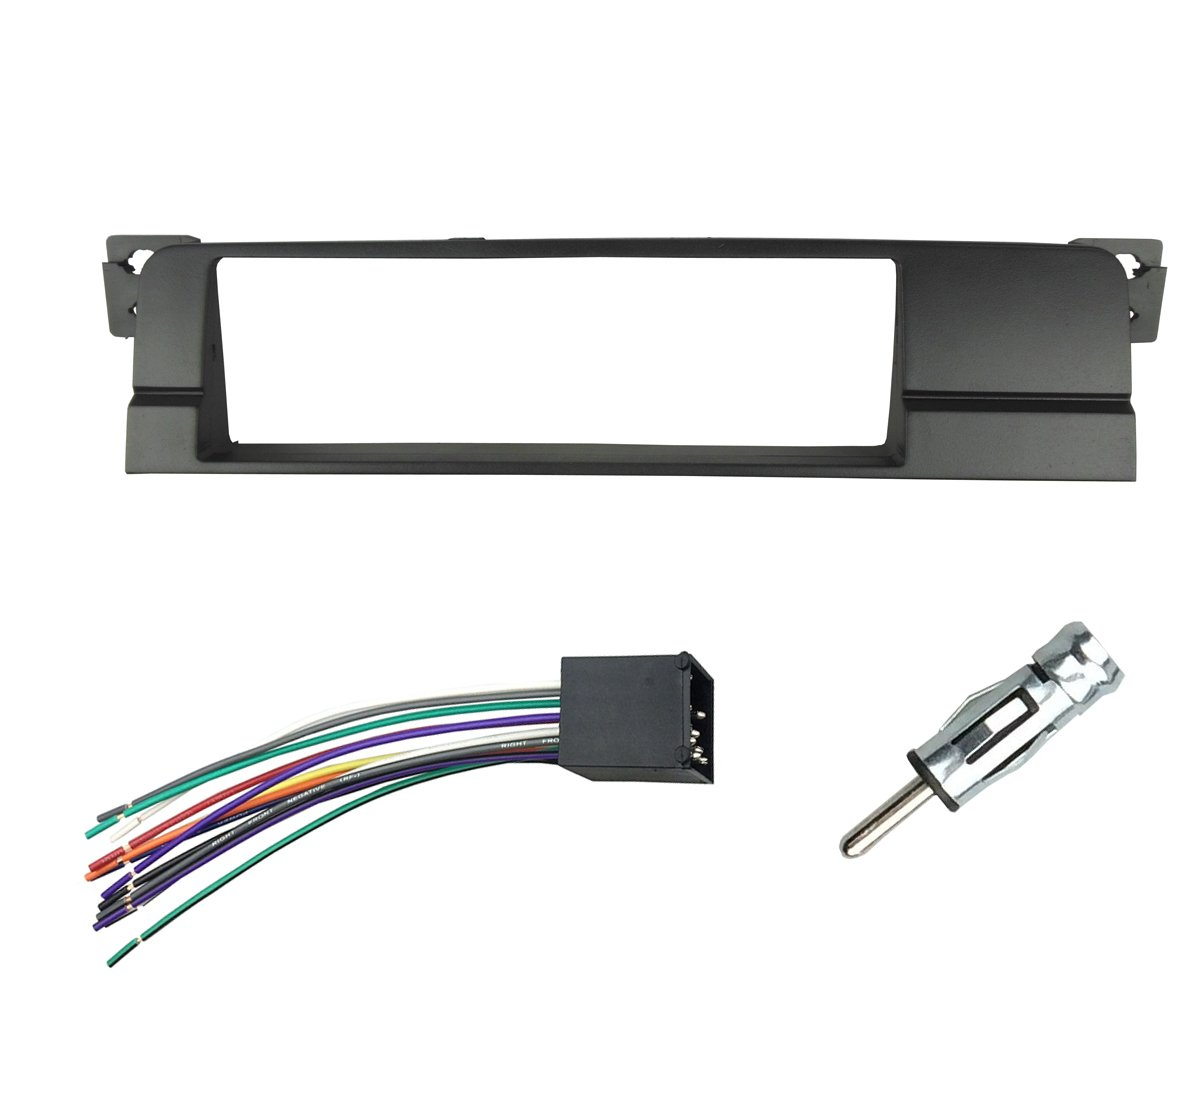 Best Rated In Car Electronics Installation Services Helpful Bmw 3 Series Wiring Harness Dkmus Dash Trim Kit For M3 E46 One Din Radio Stereo Panel